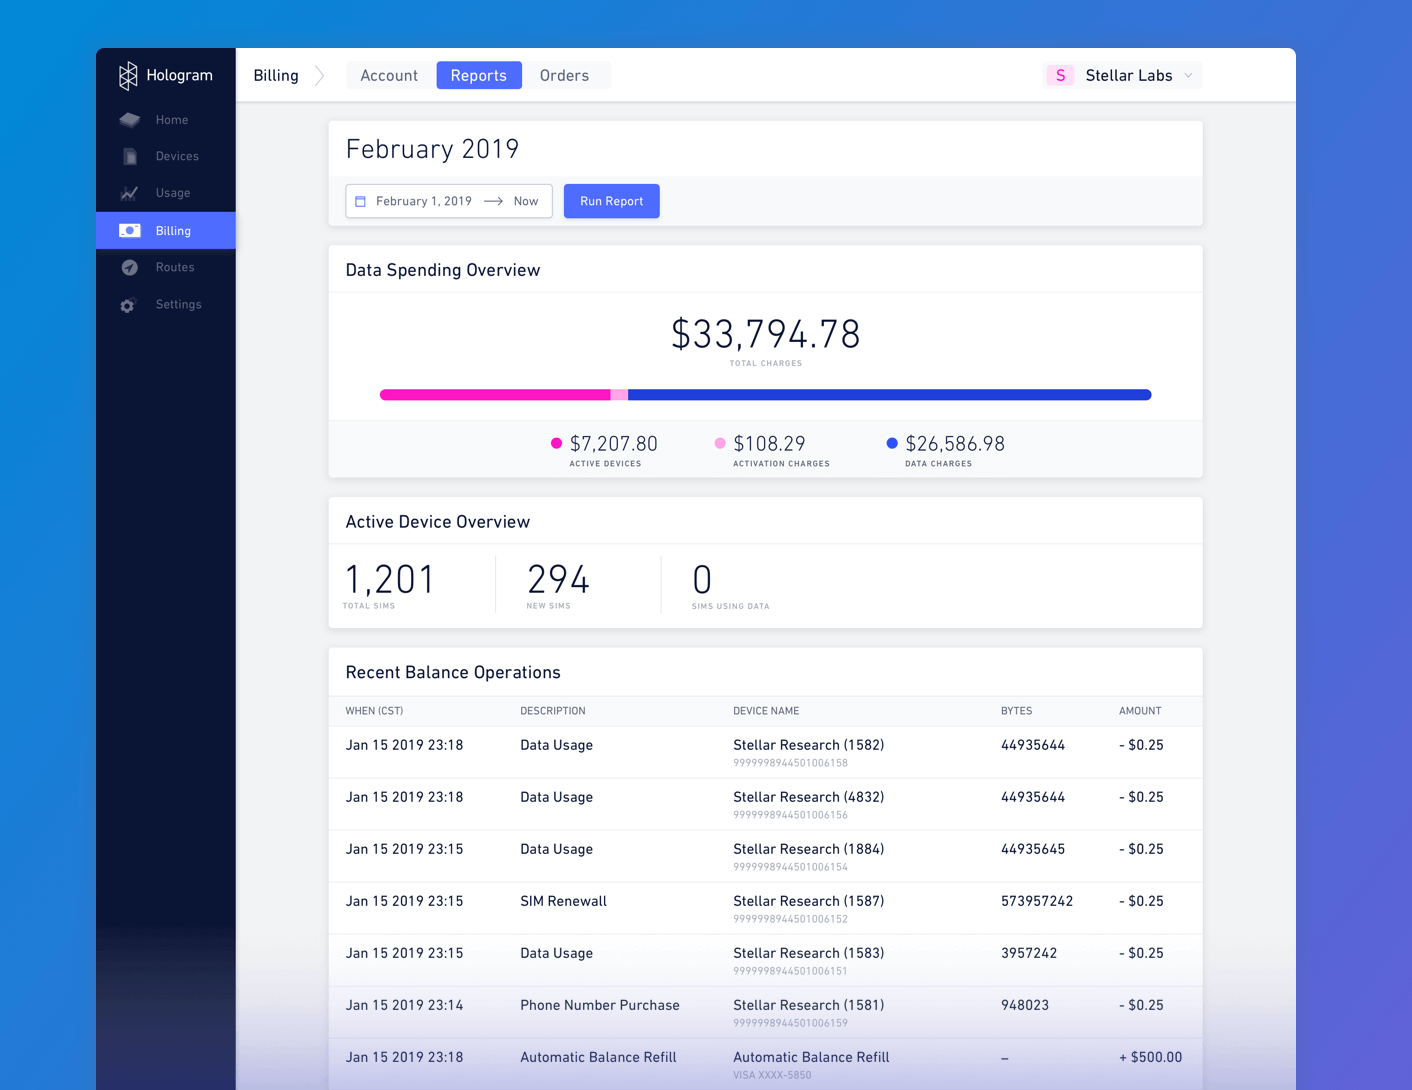 Finance dashboard image